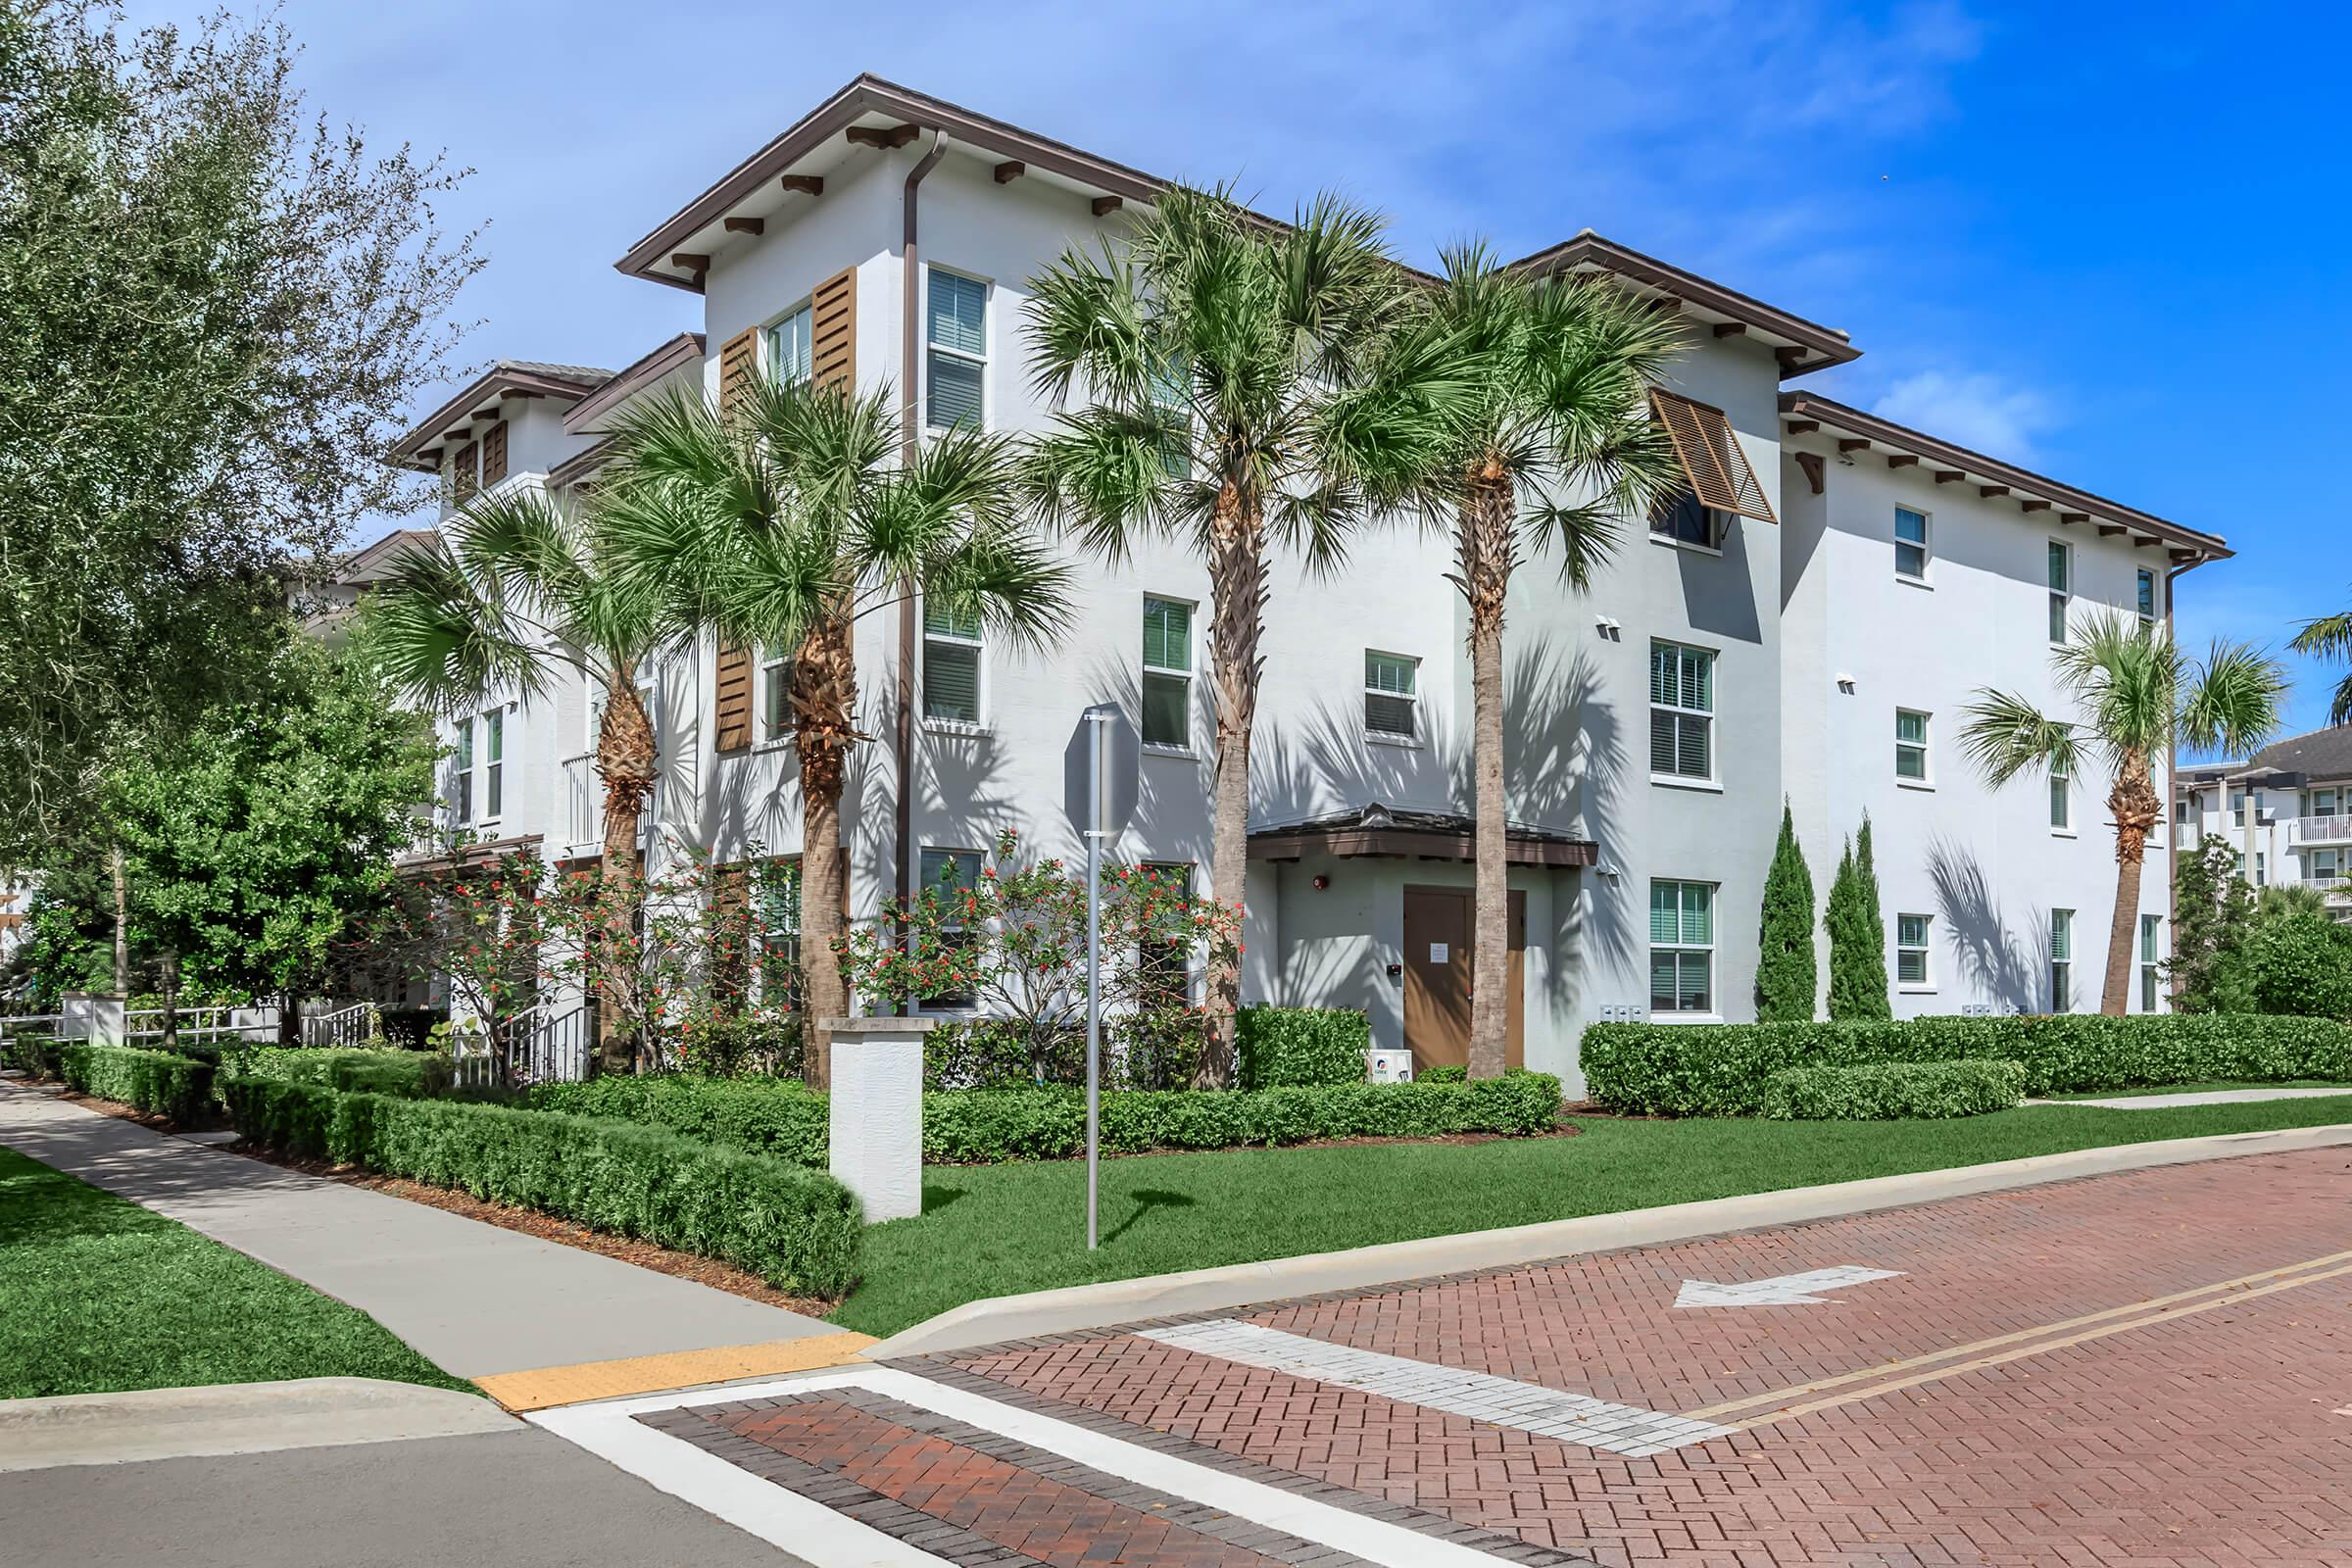 Landscaping at The Allure Apartments in Jupiter, FL